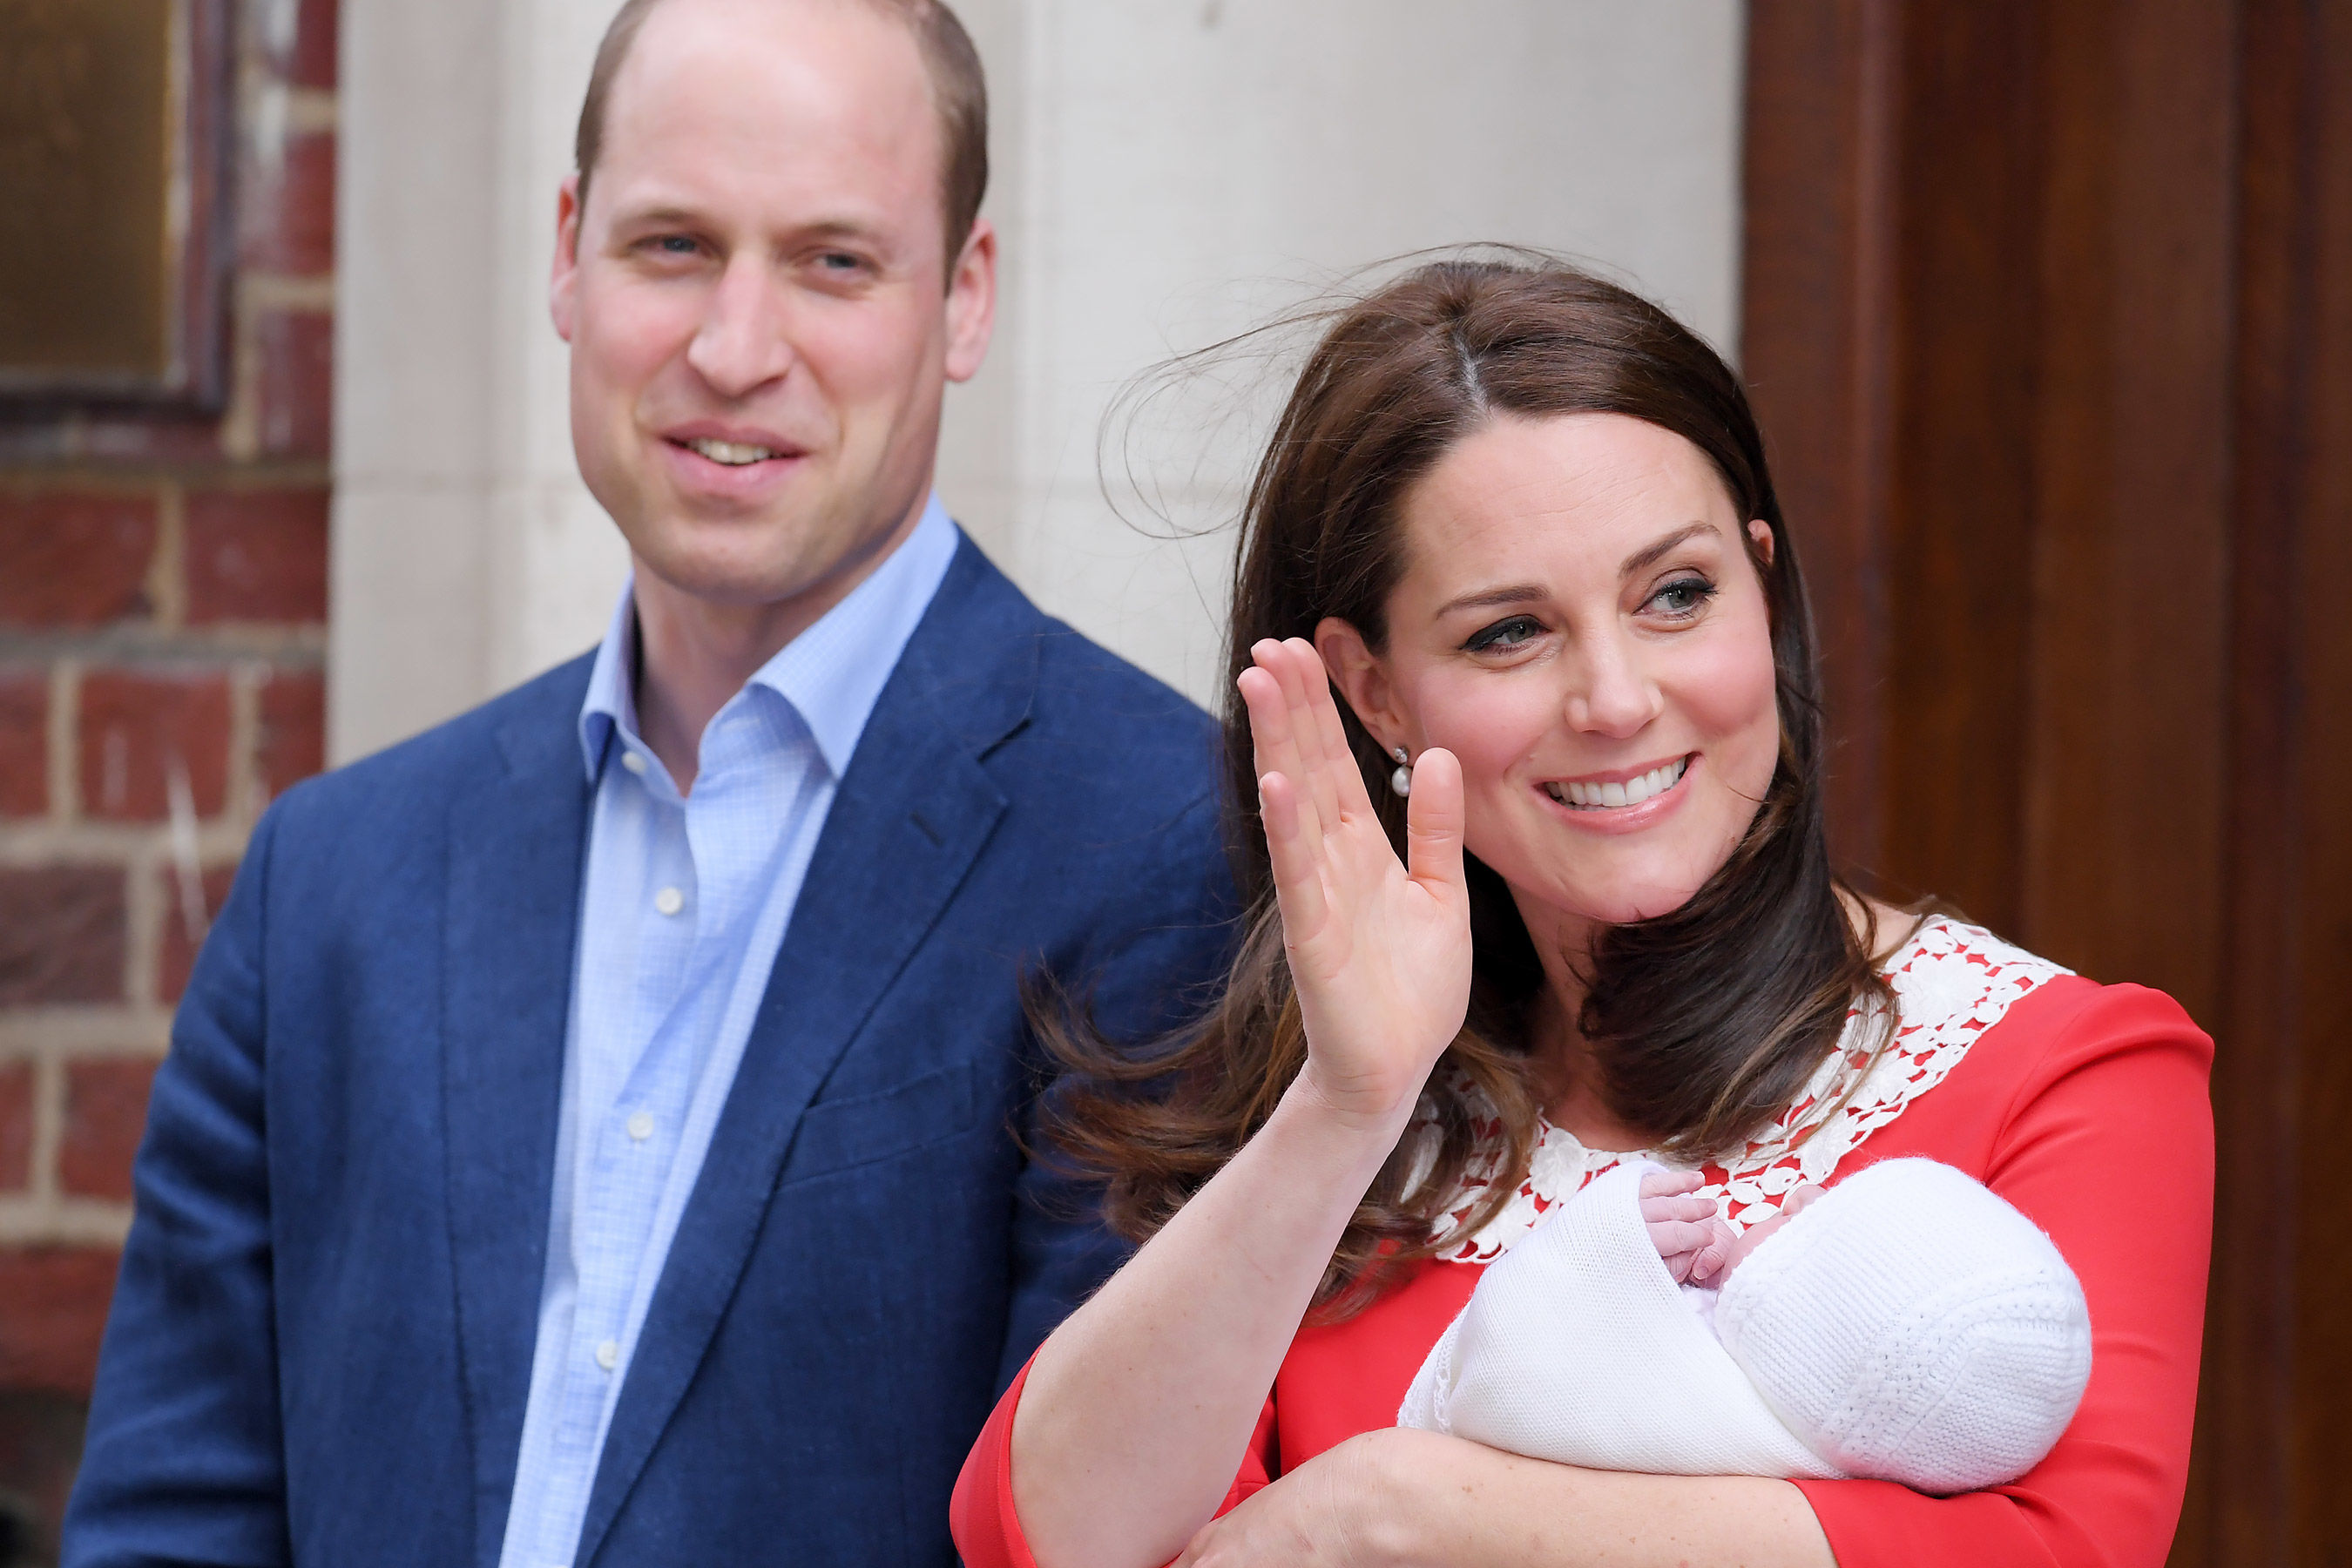 Kate Middleton Steps Out with New Royal Baby Just 7 Hours After Giving Birth: See the Photos!